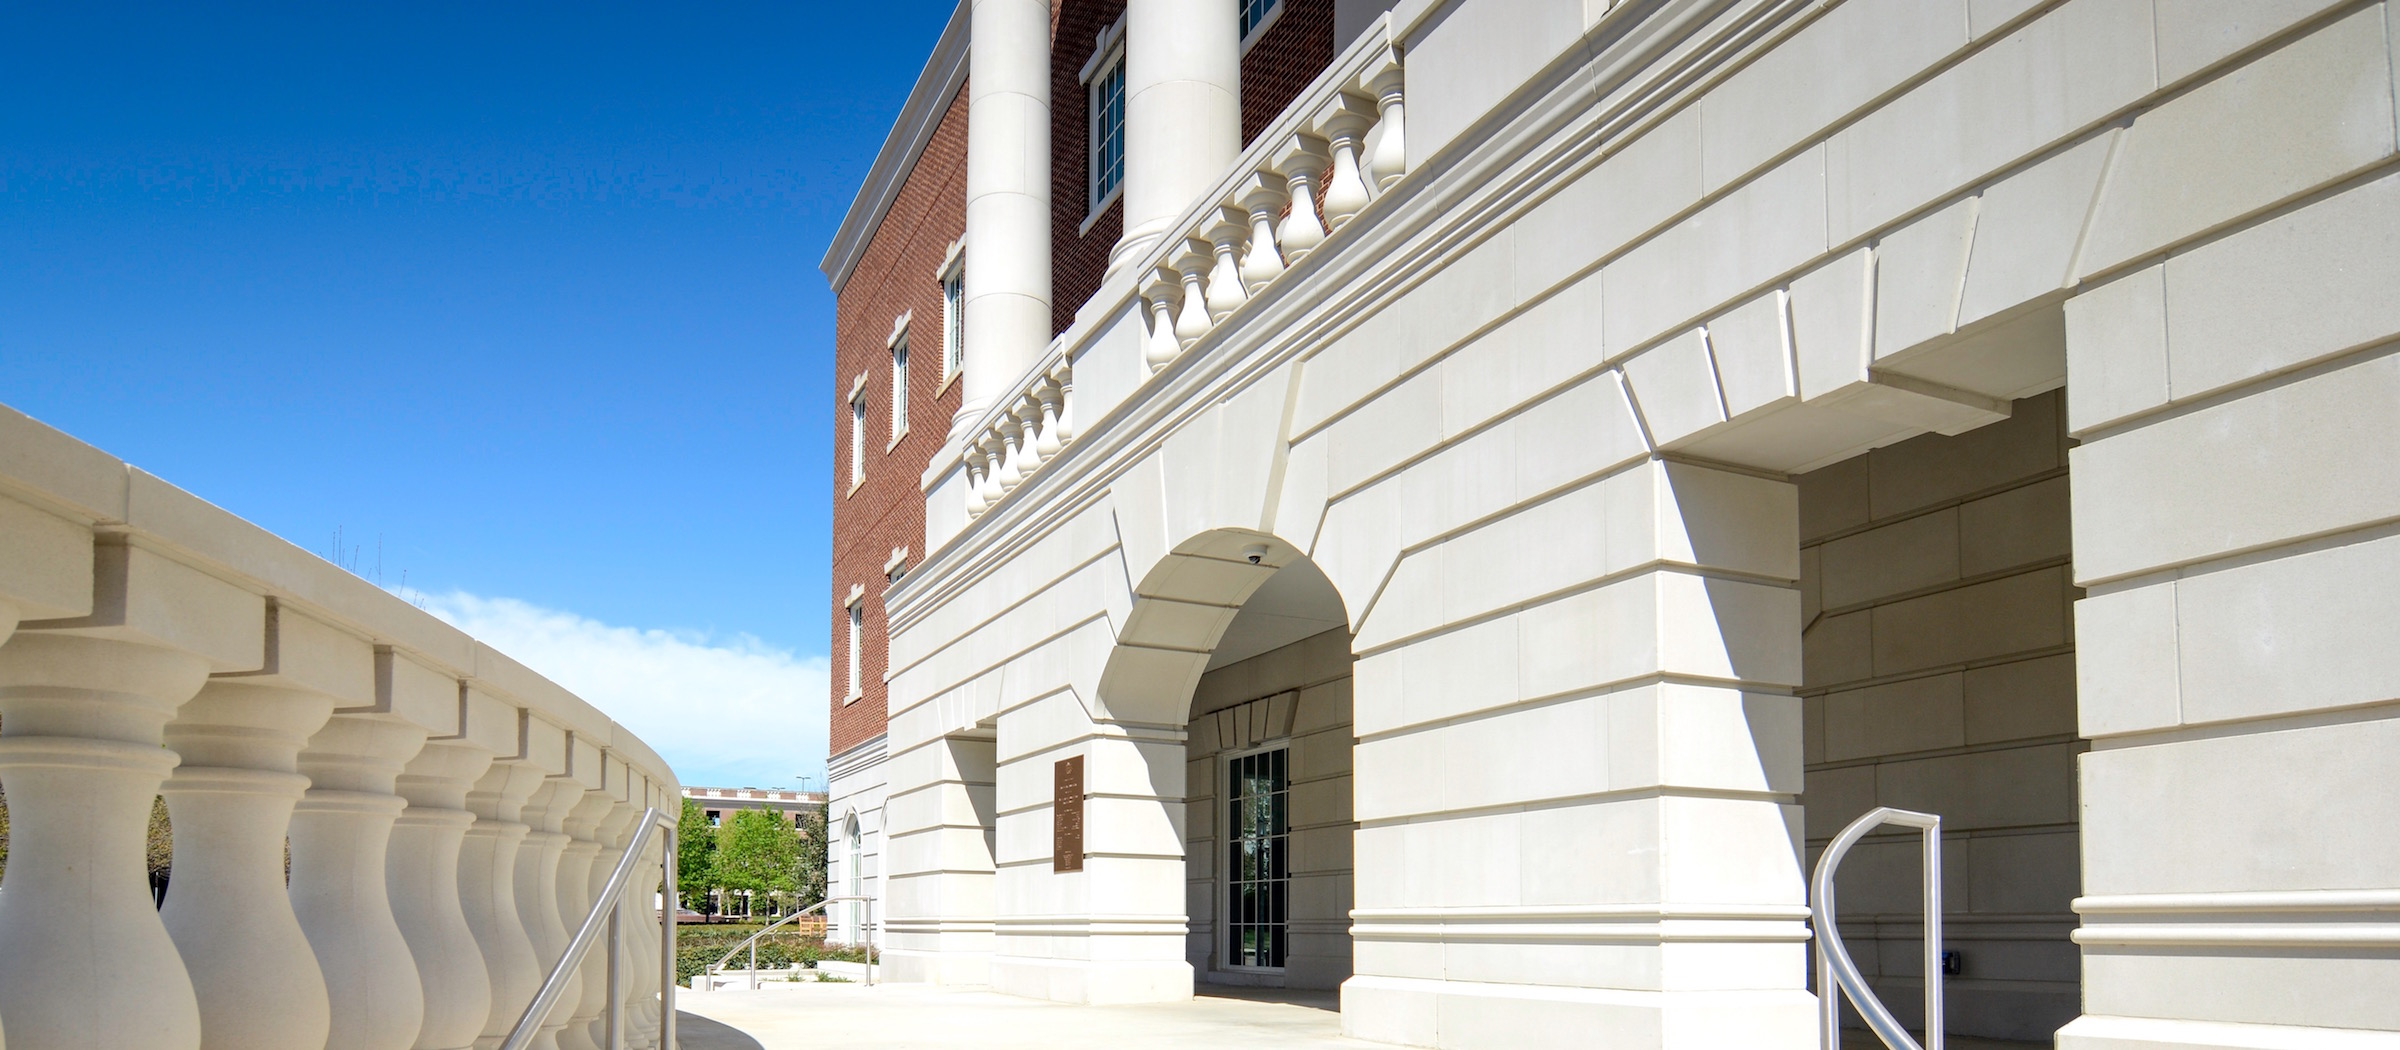 SMU Simmons Hall | Wilks Masonry | Fabricated Stone Panels Cladding, Coping, Veneer, Balusters, Columns